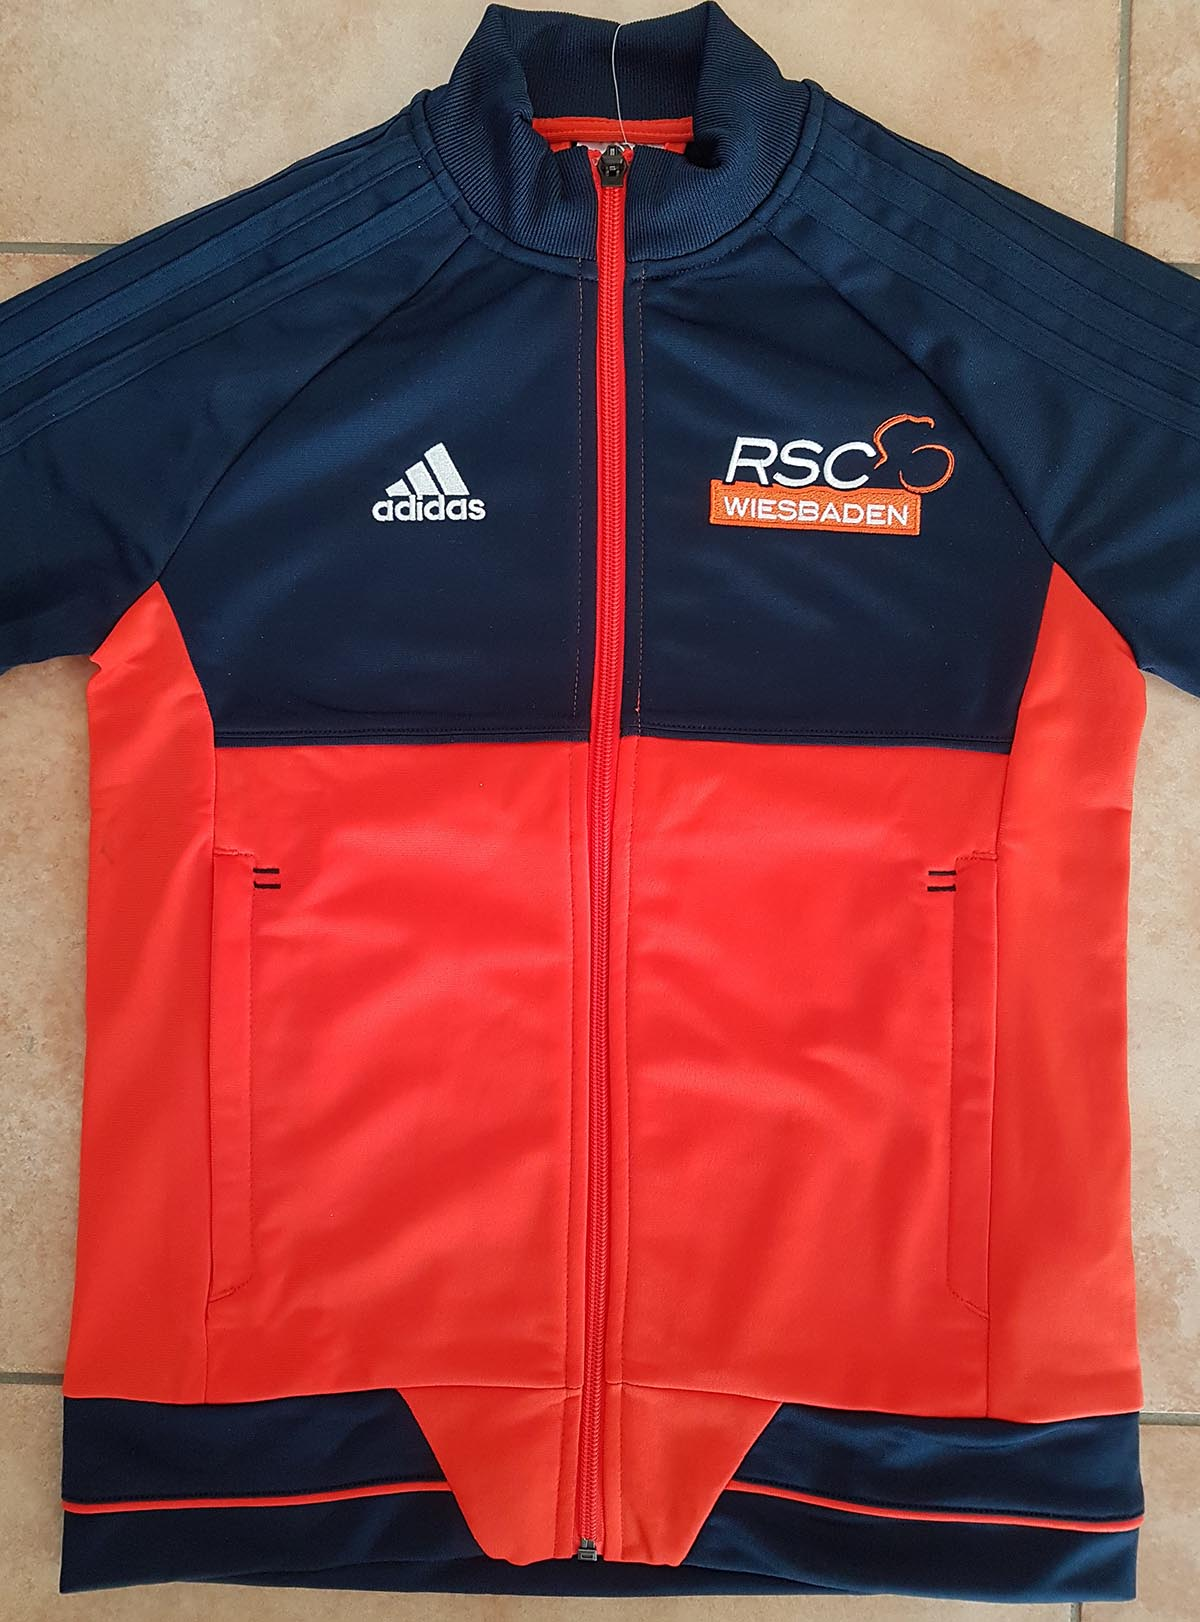 1802 Trainingsjacke adidas f